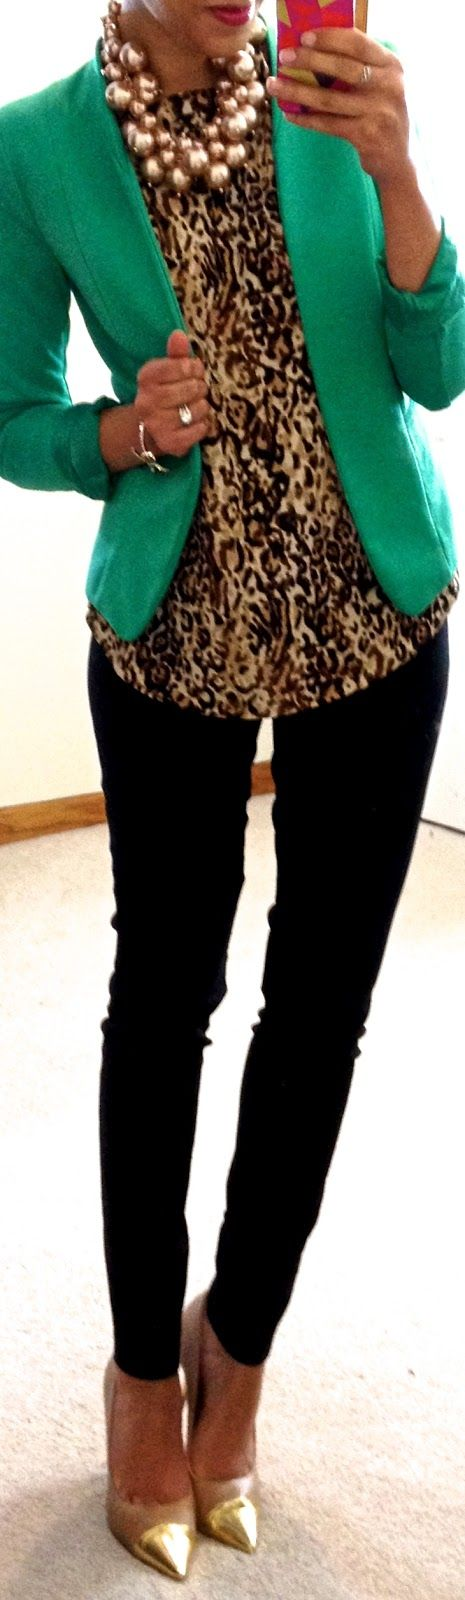 leopard print, green, and black.- casual Friday